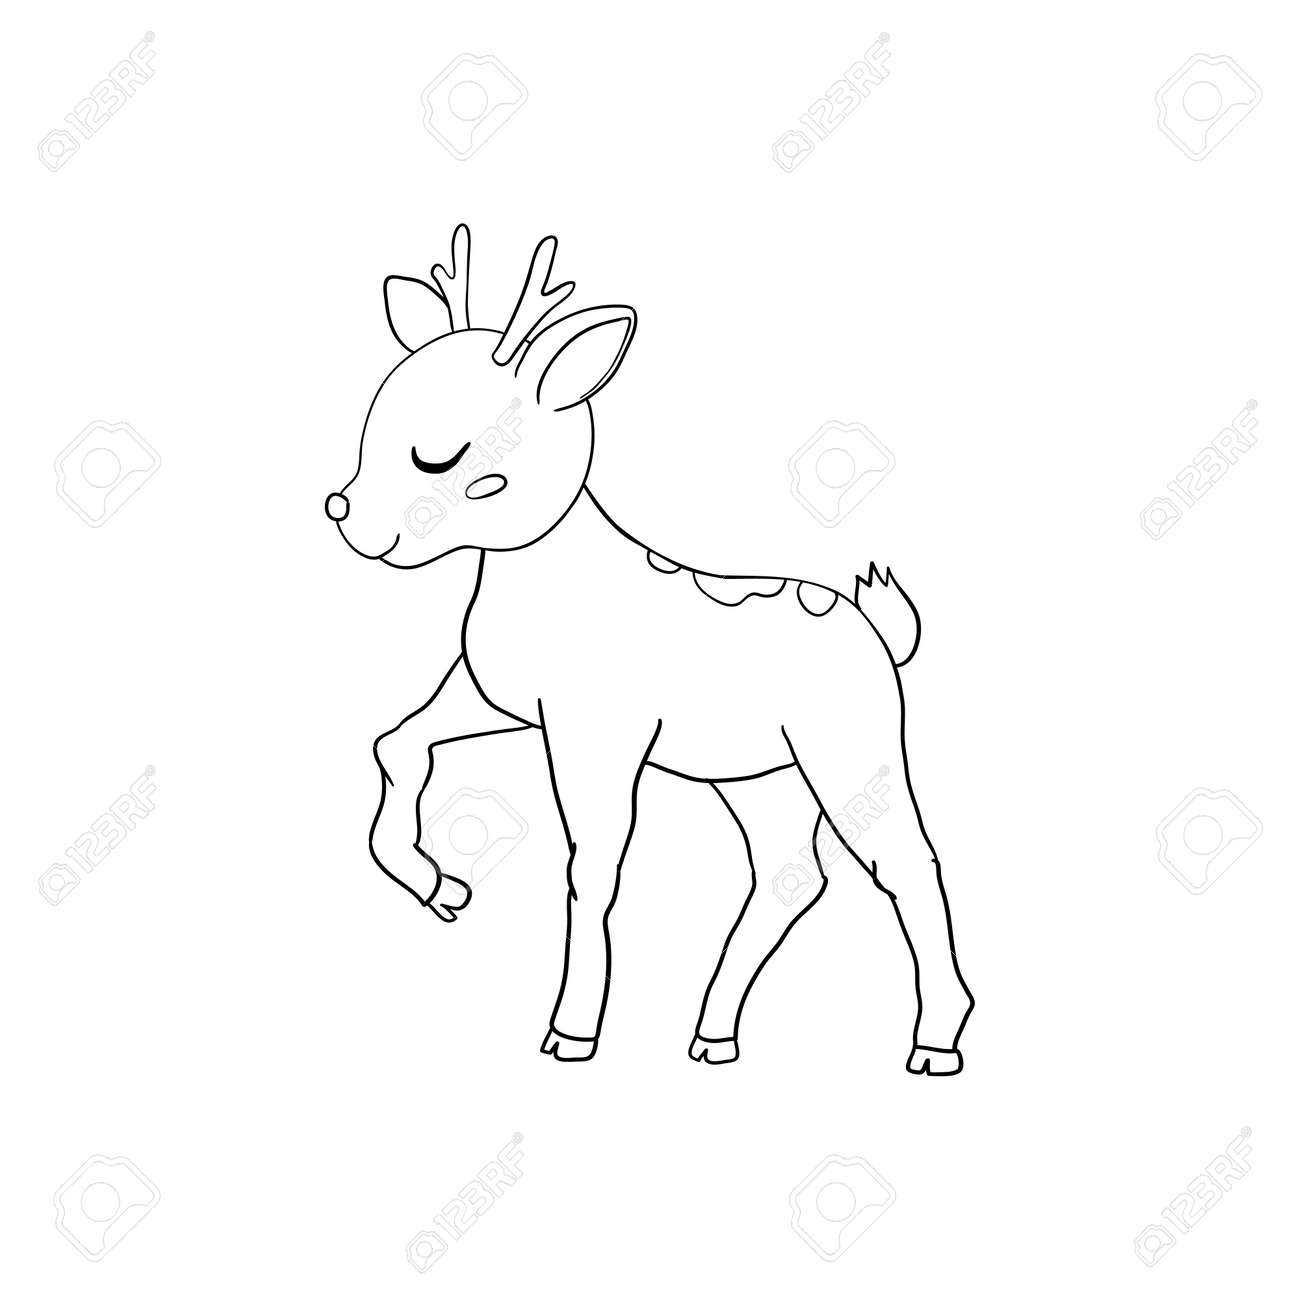 Hand-drawn Sketch of an Isolated Little Deer Black and White Cartoon Vector Illustration for Coloring Book-Drawn Vector - 168291269